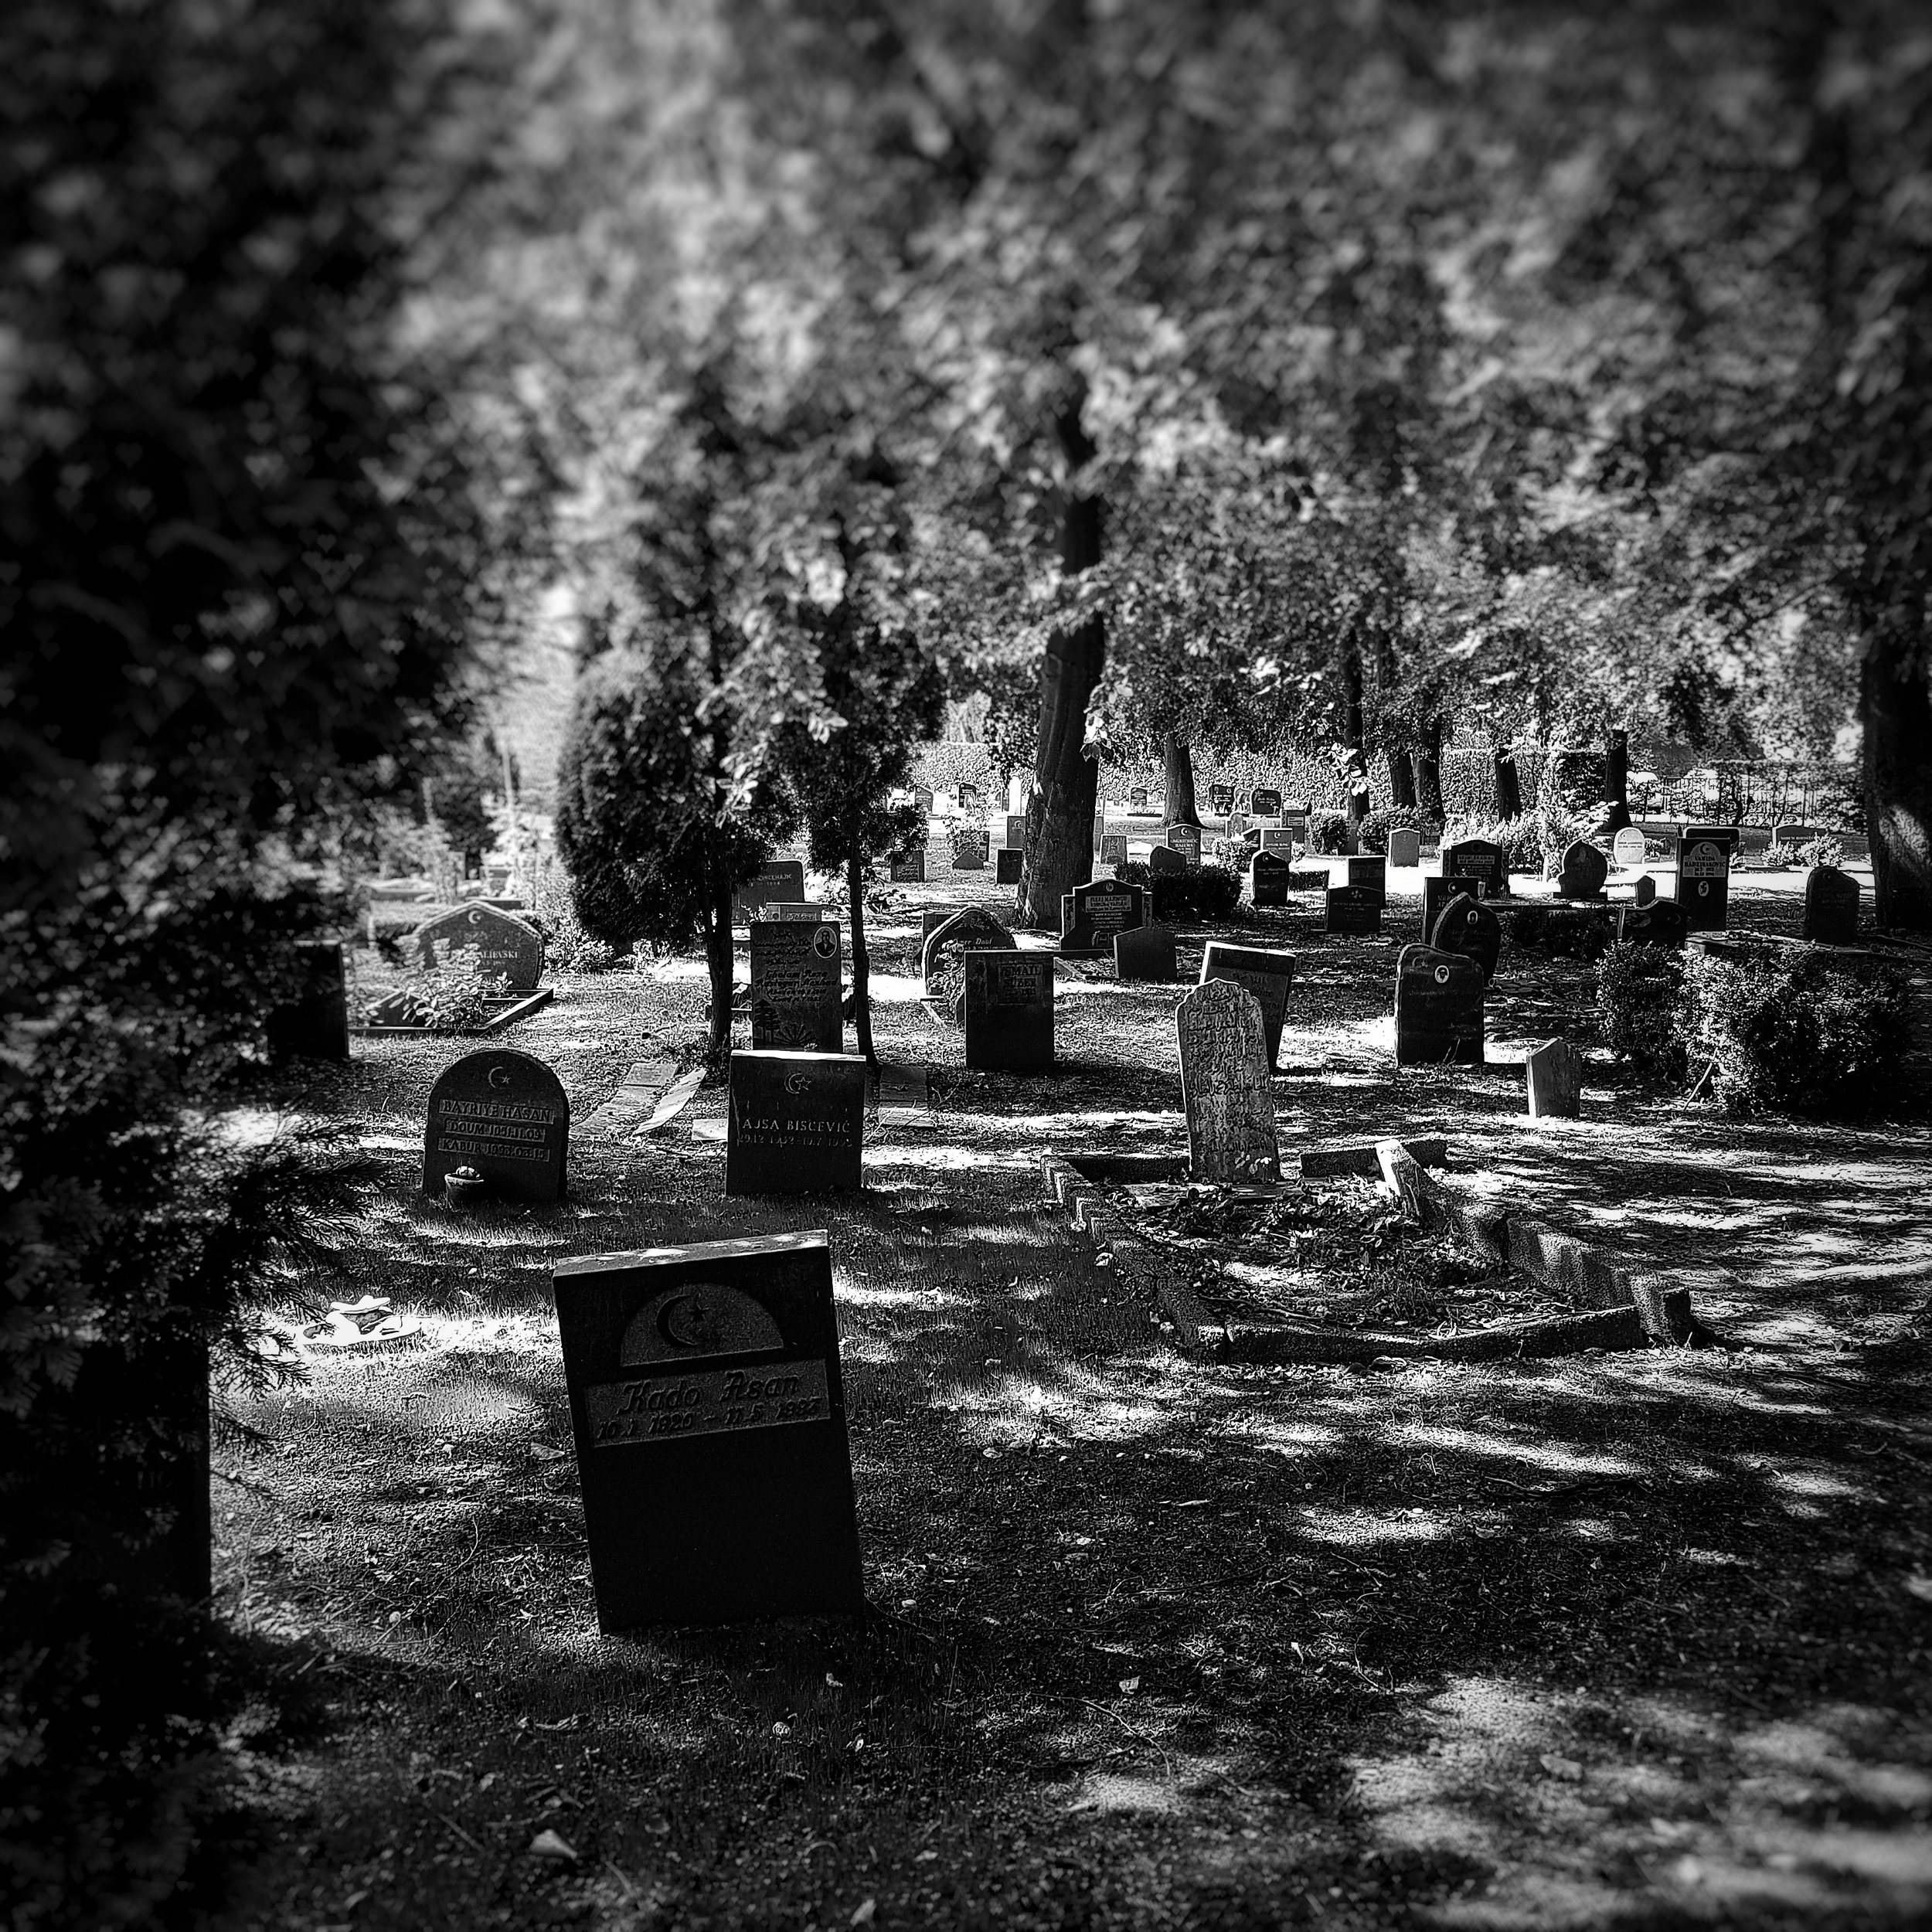 Day 234 - August 22: Remembrance